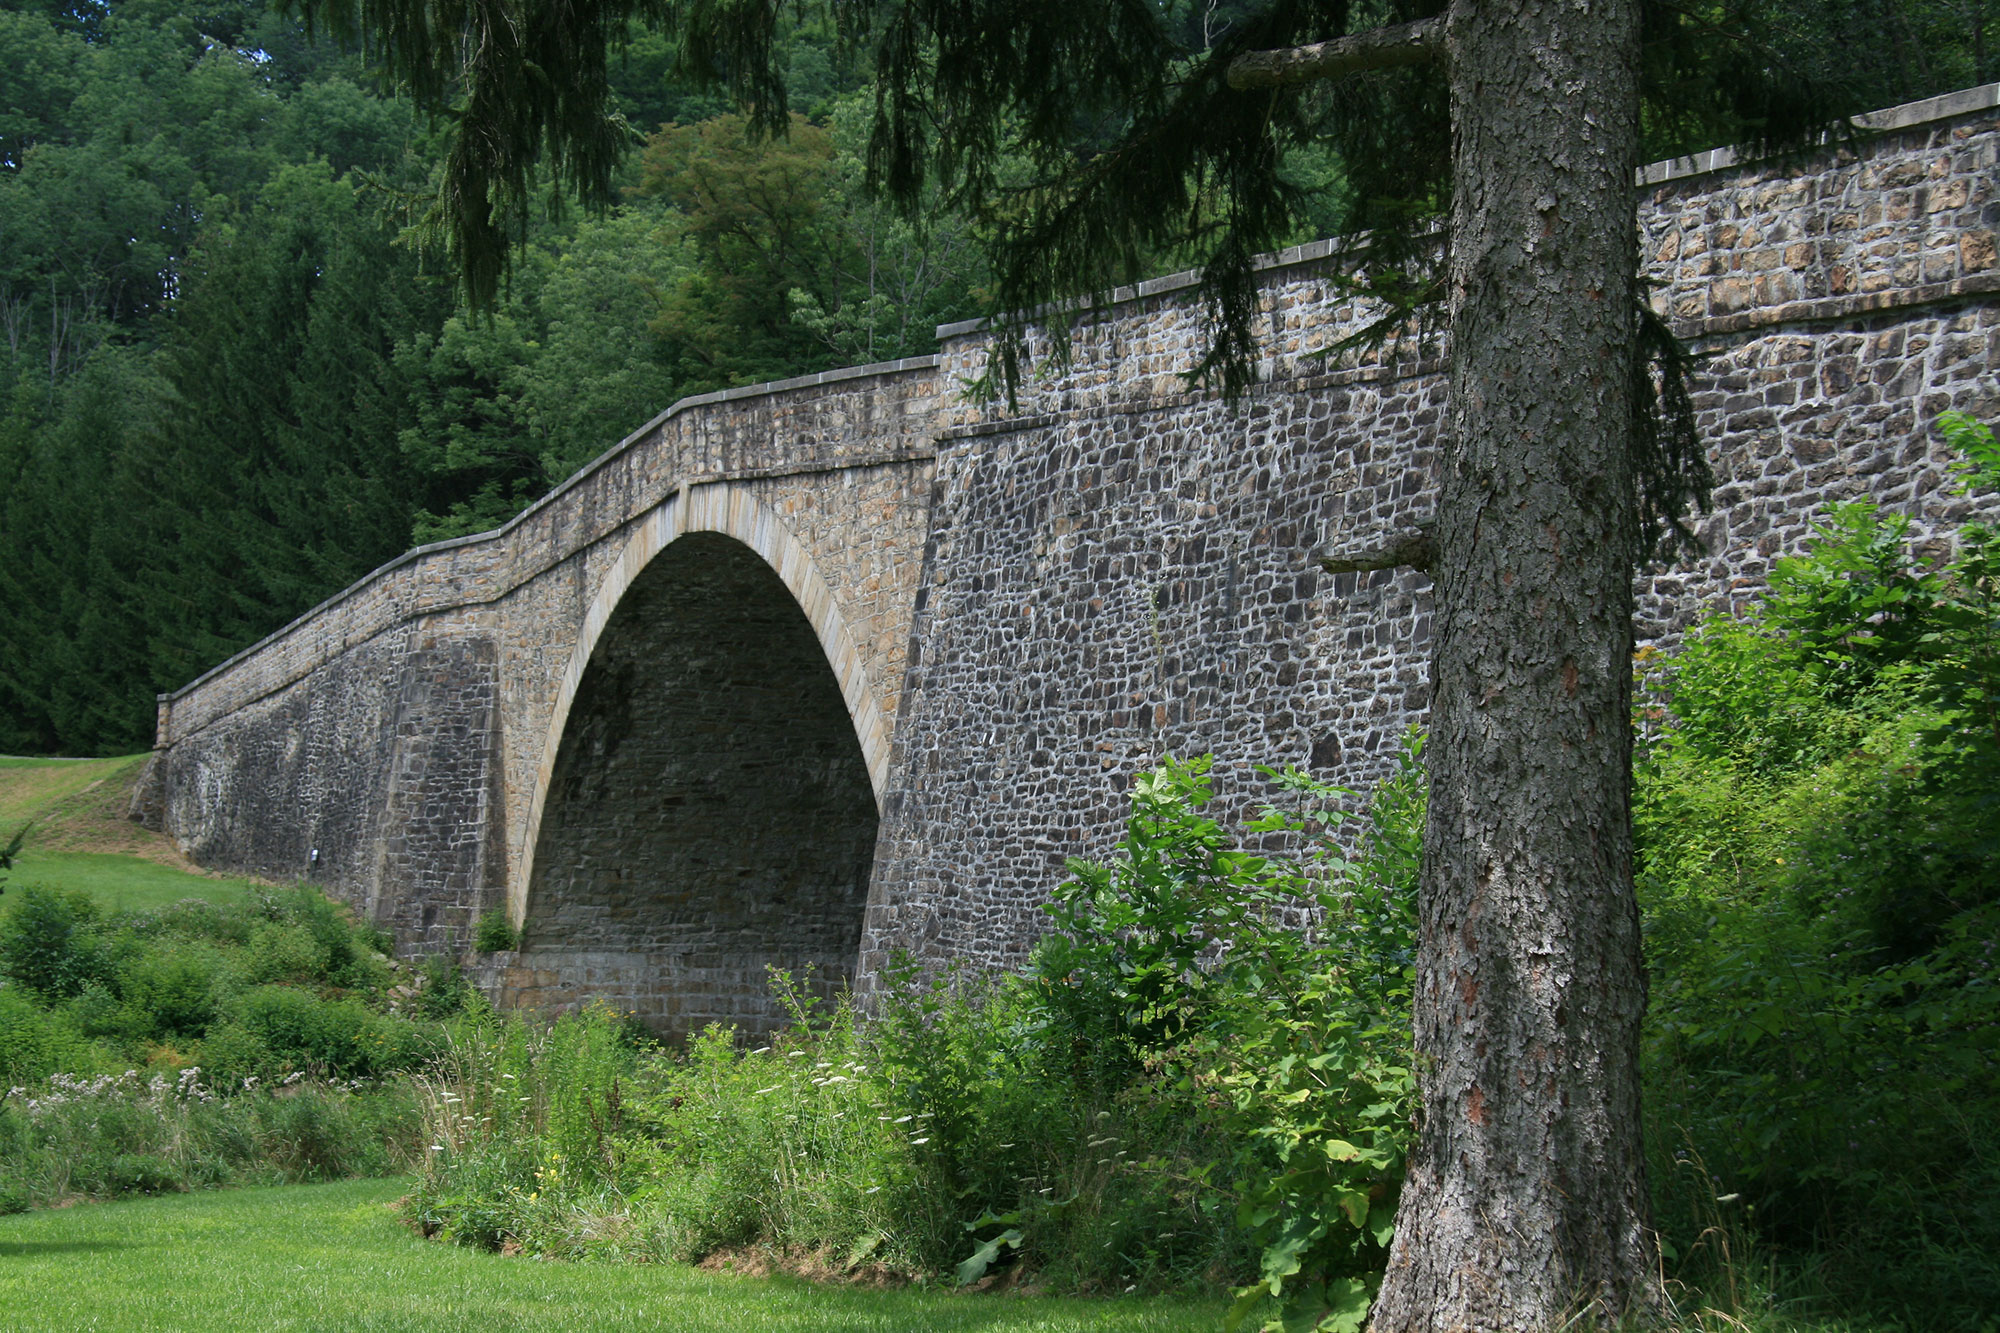 The Casselman Bridge, built in 1811 [National Historic Landmark]